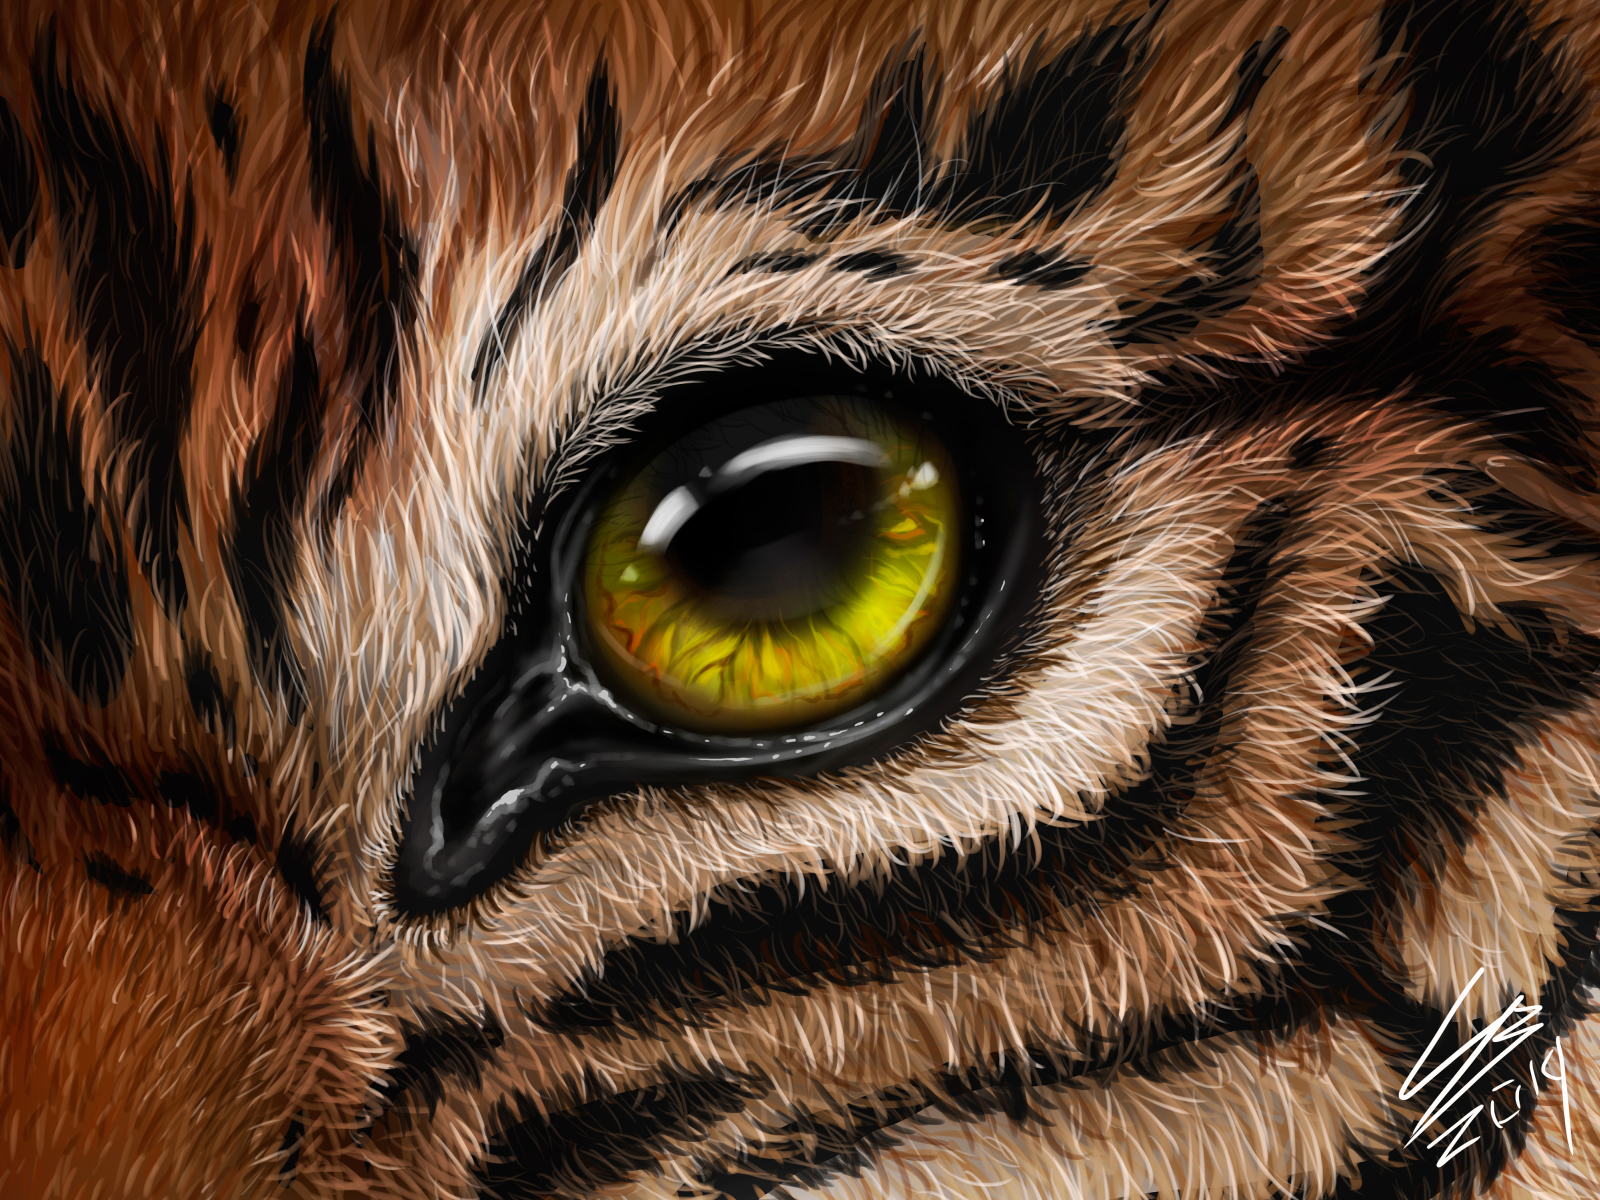 Tiger S Eye By Victoria Sokolova On Dribbble